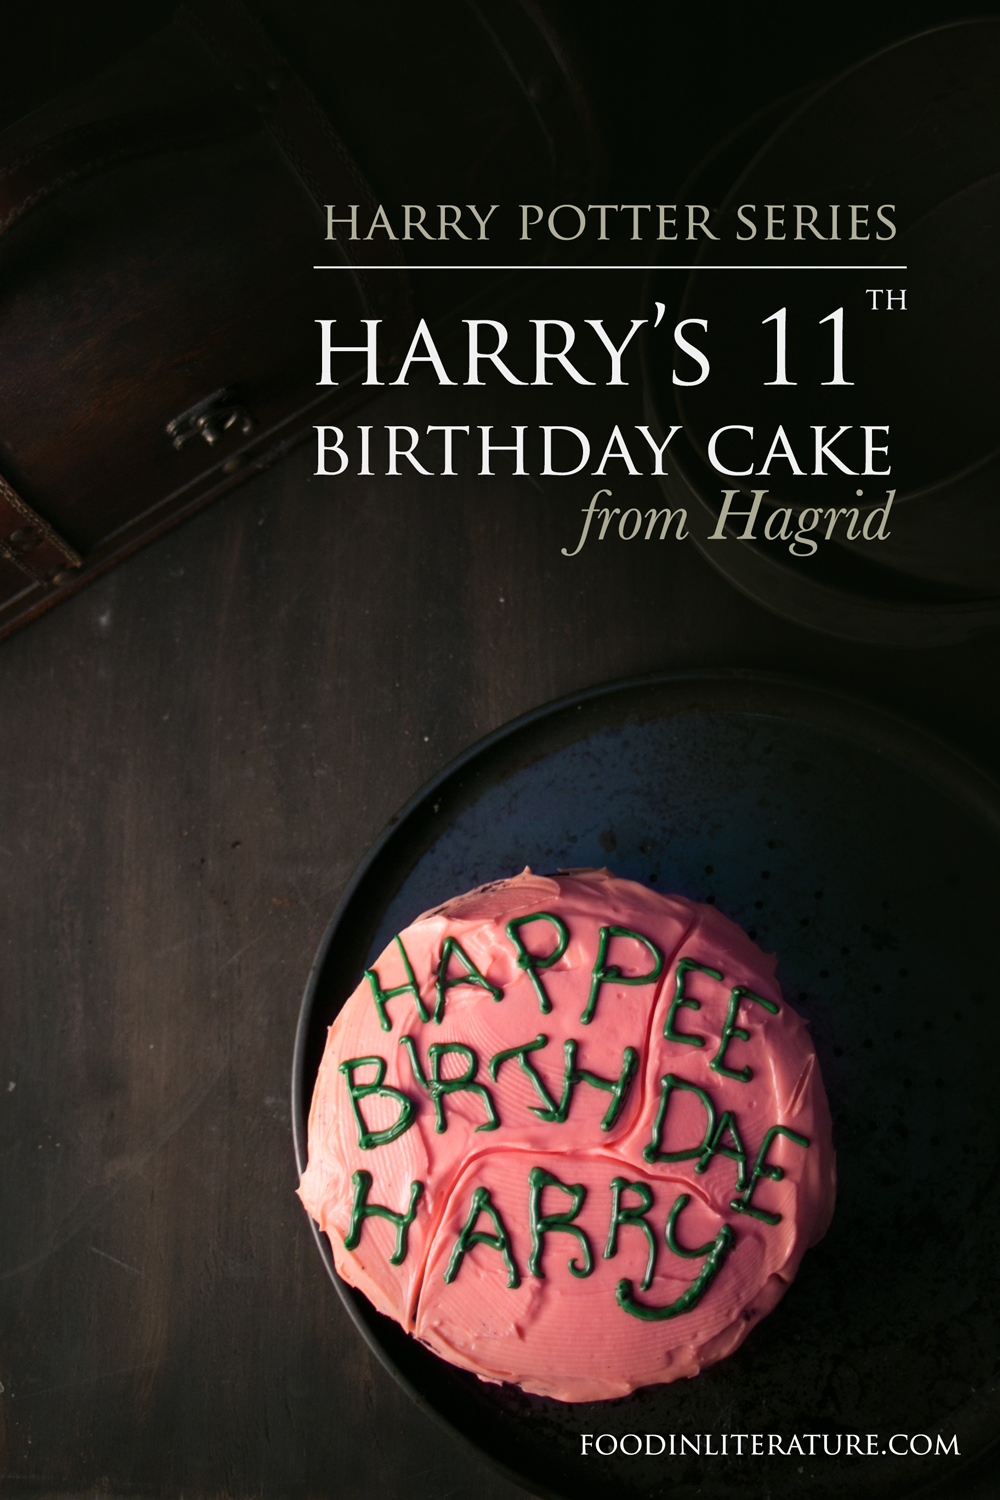 Image Cake From Harry Potter Hagrid